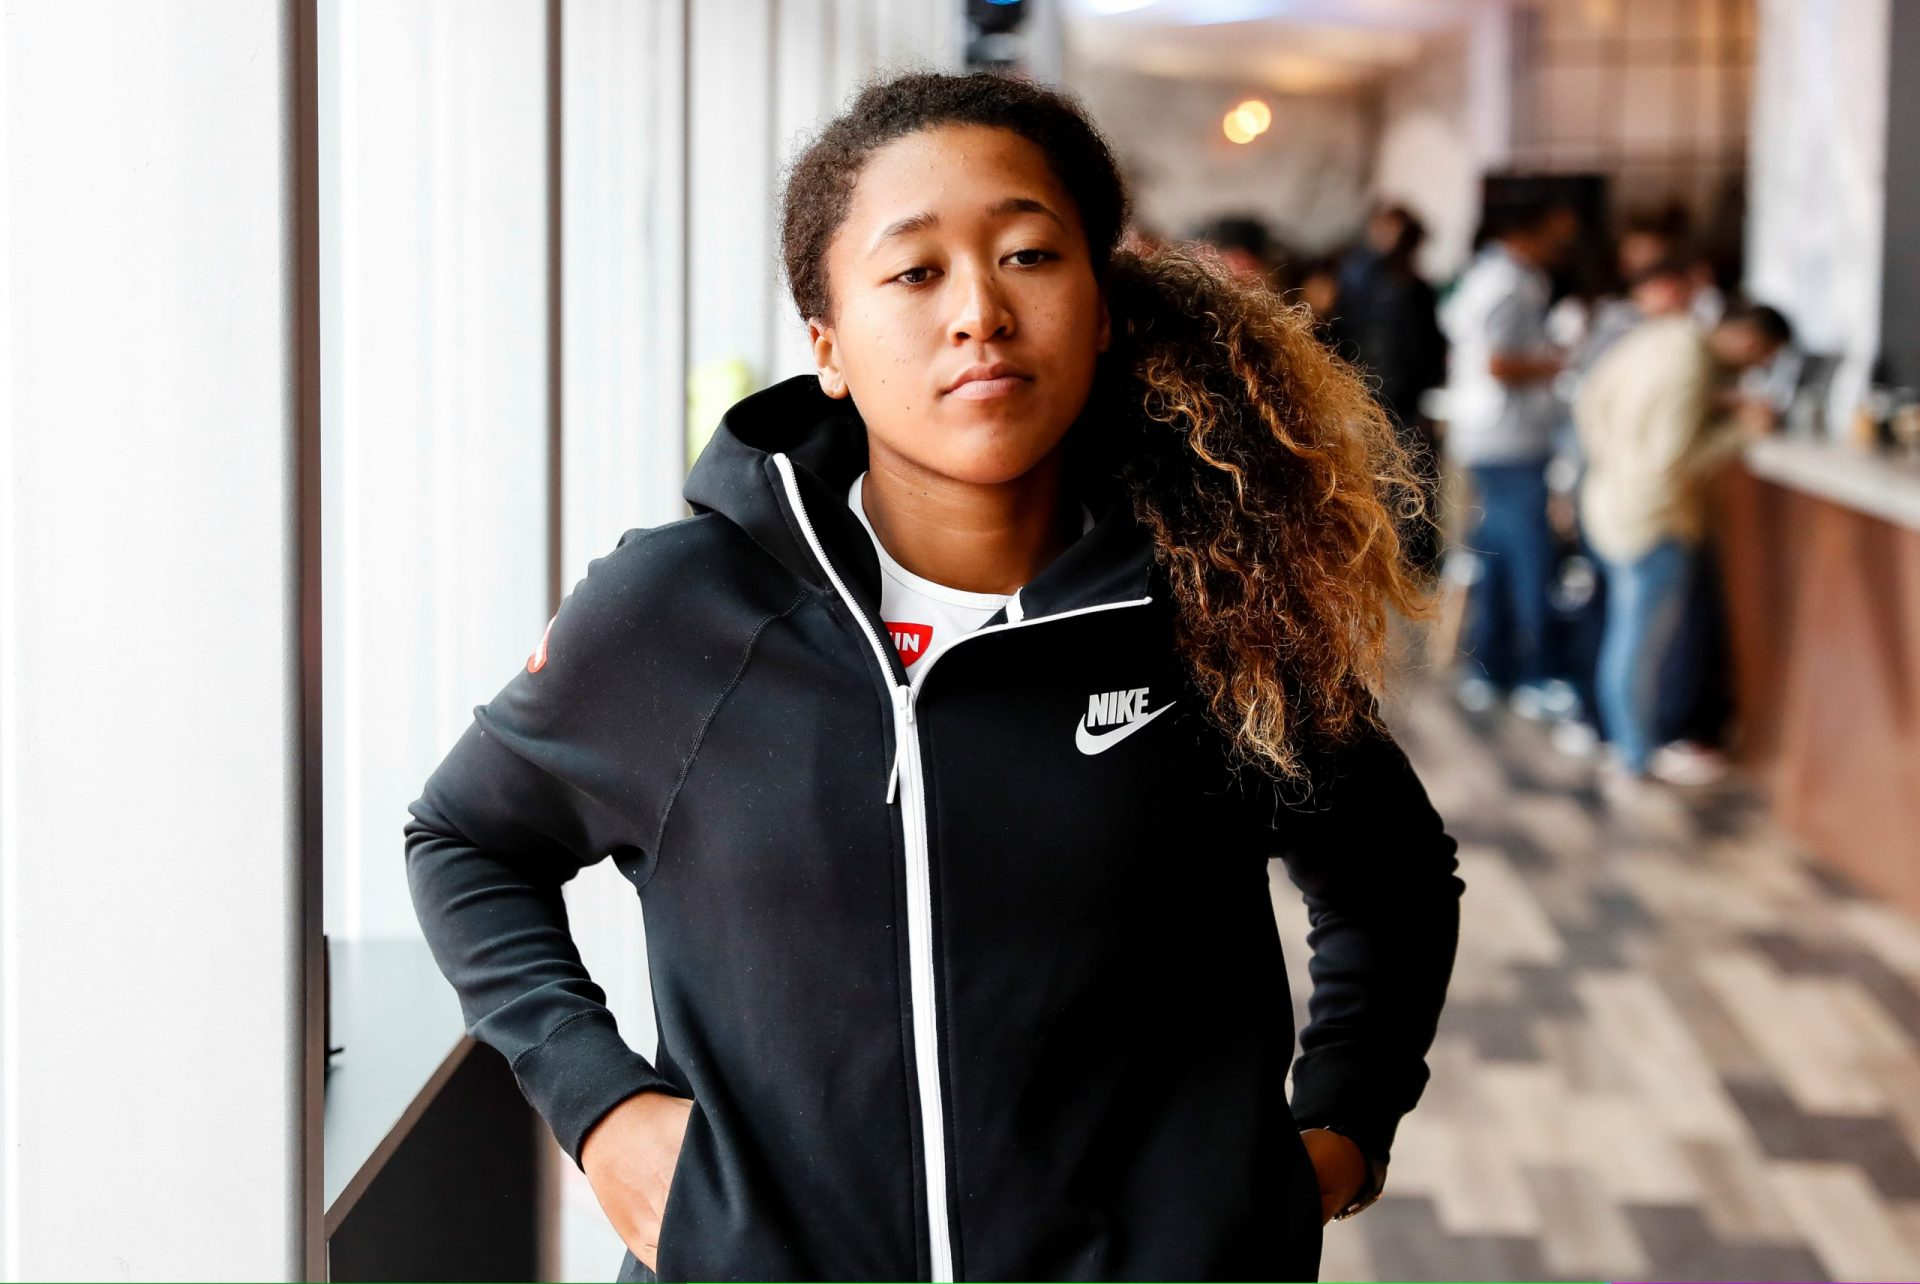 Naomi Osaka skips Wimbledon: the story of an athlete standing up for herself